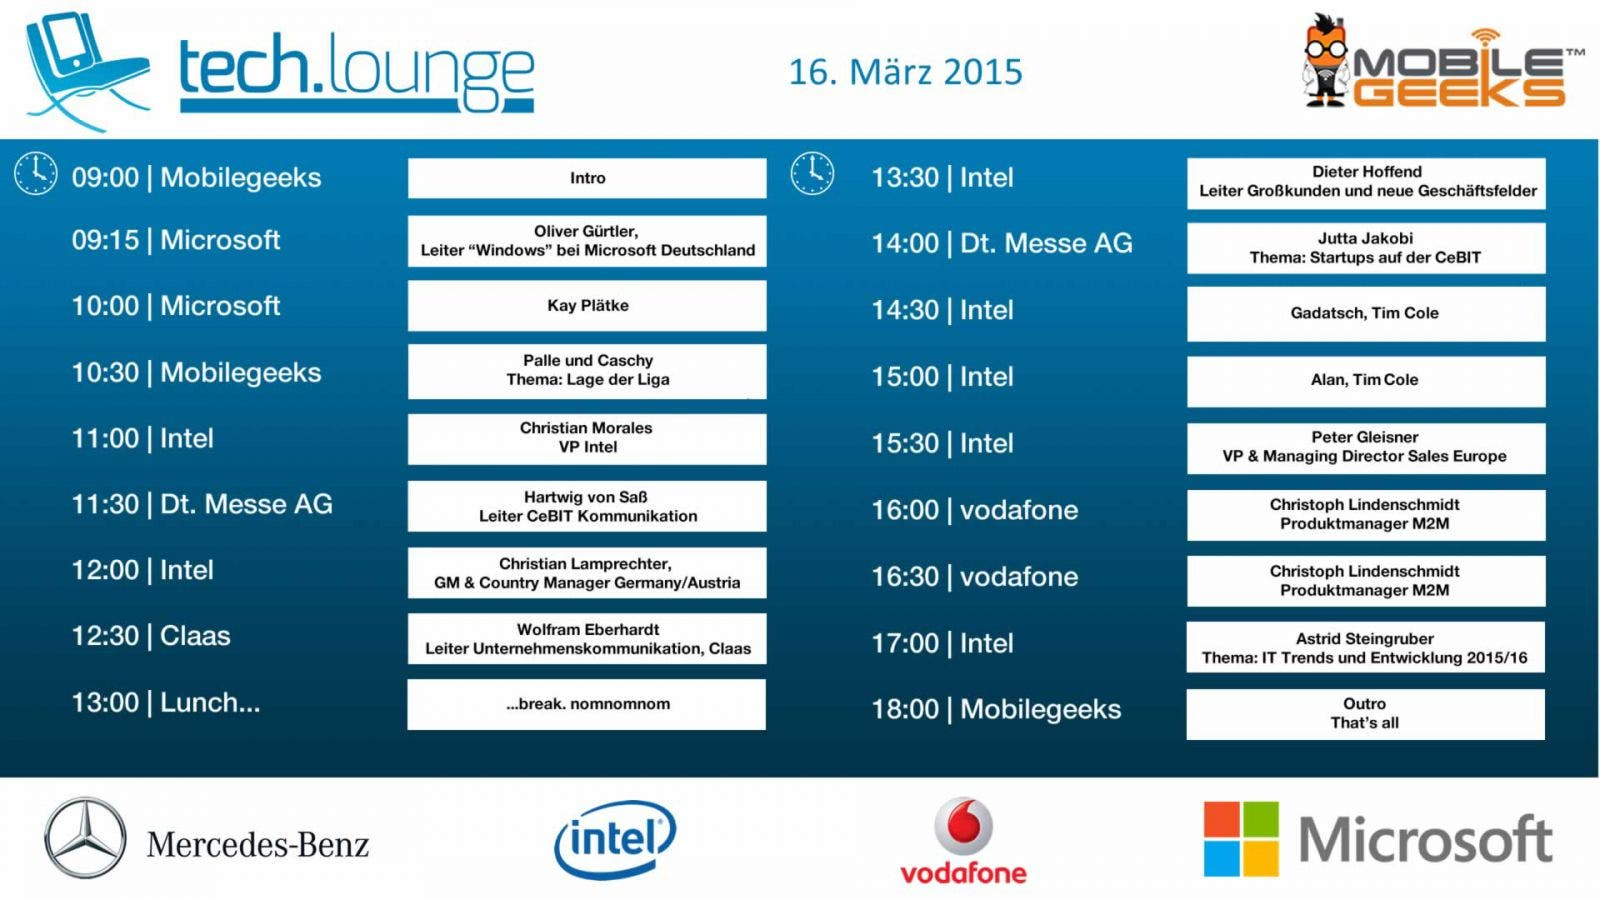 CeBIT 2015 Timetable Template - Tag 1(3)